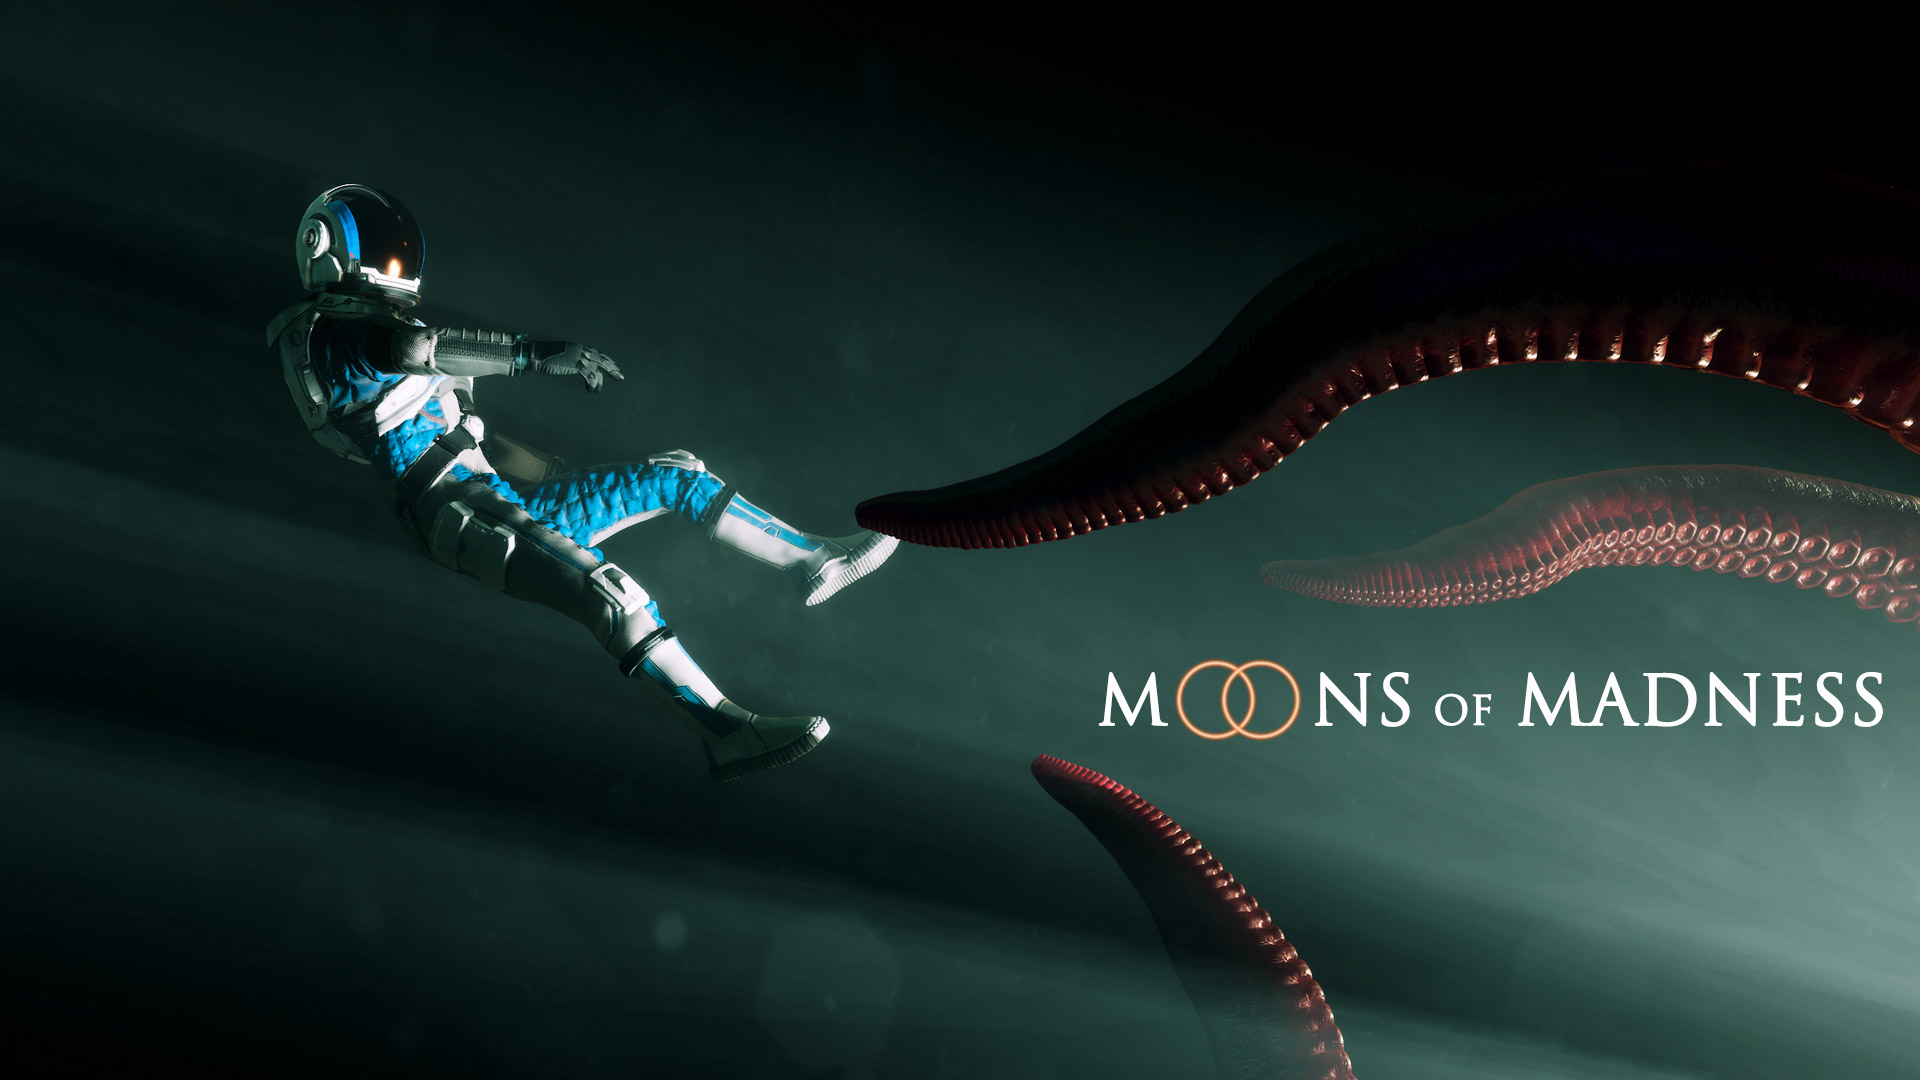 Free Moons of Madness Wallpaper in 1920x1080